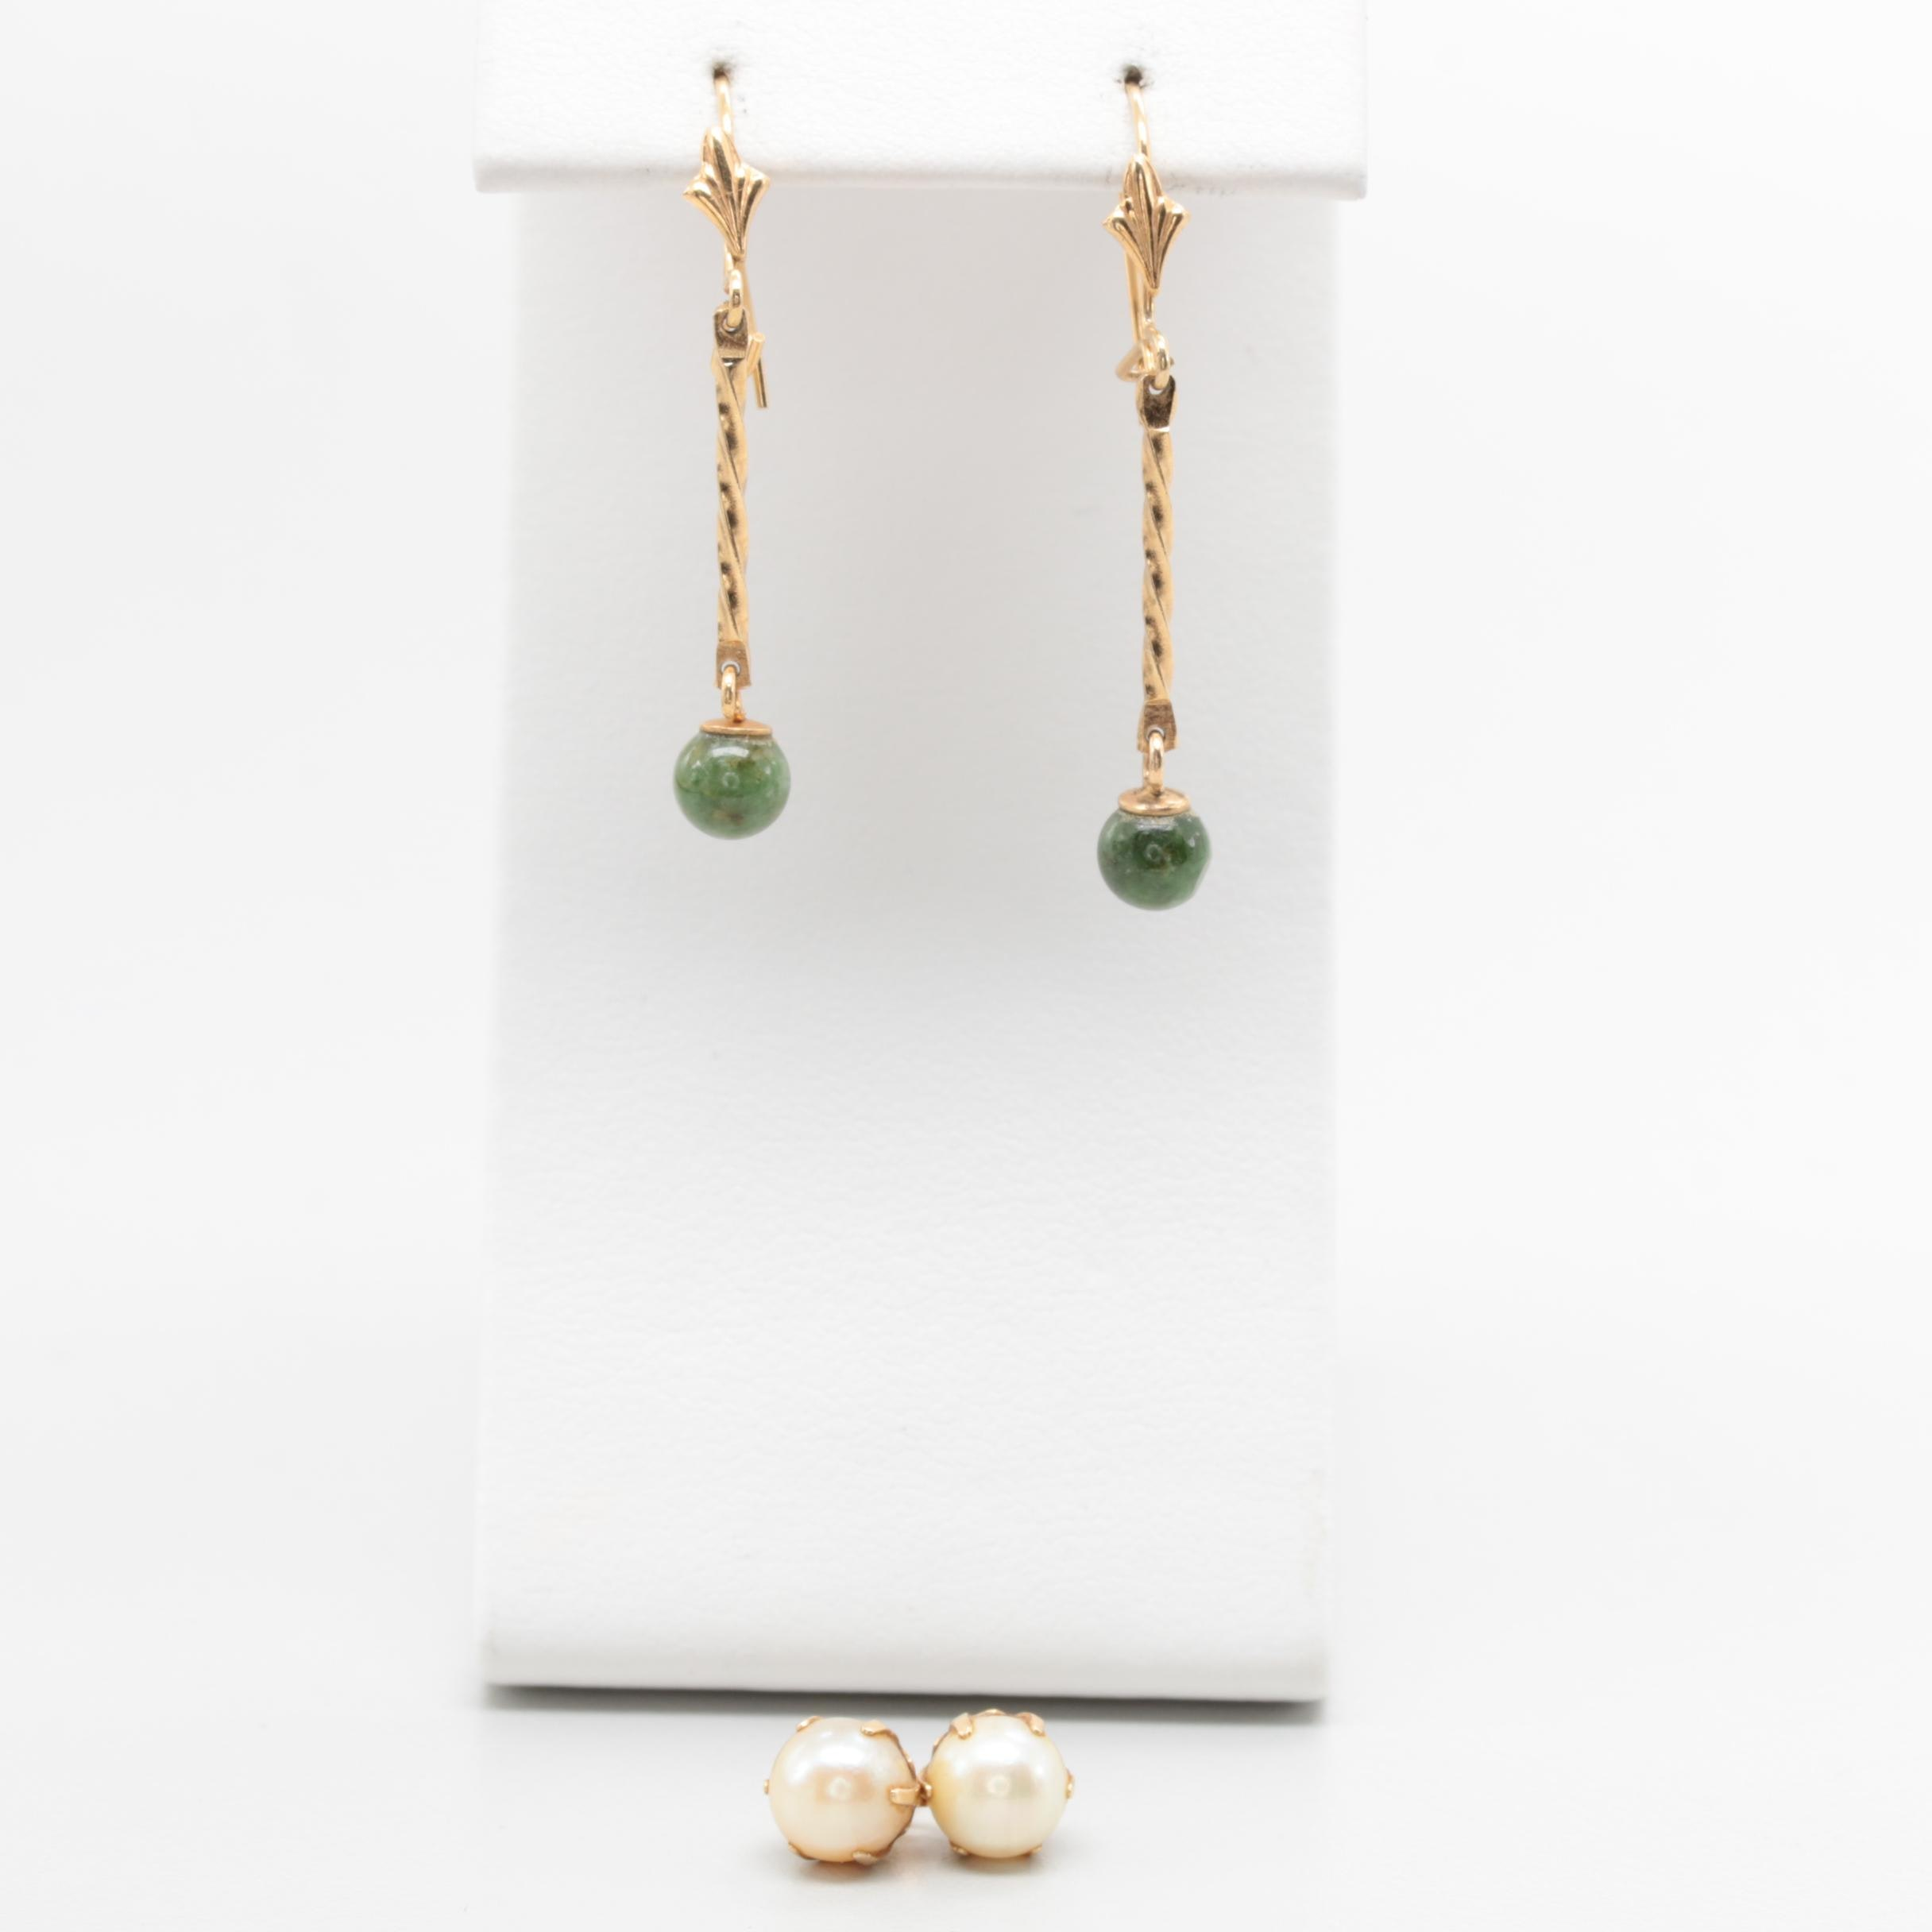 14K Yellow Gold Nephrite and Cultured Pearl Earrings